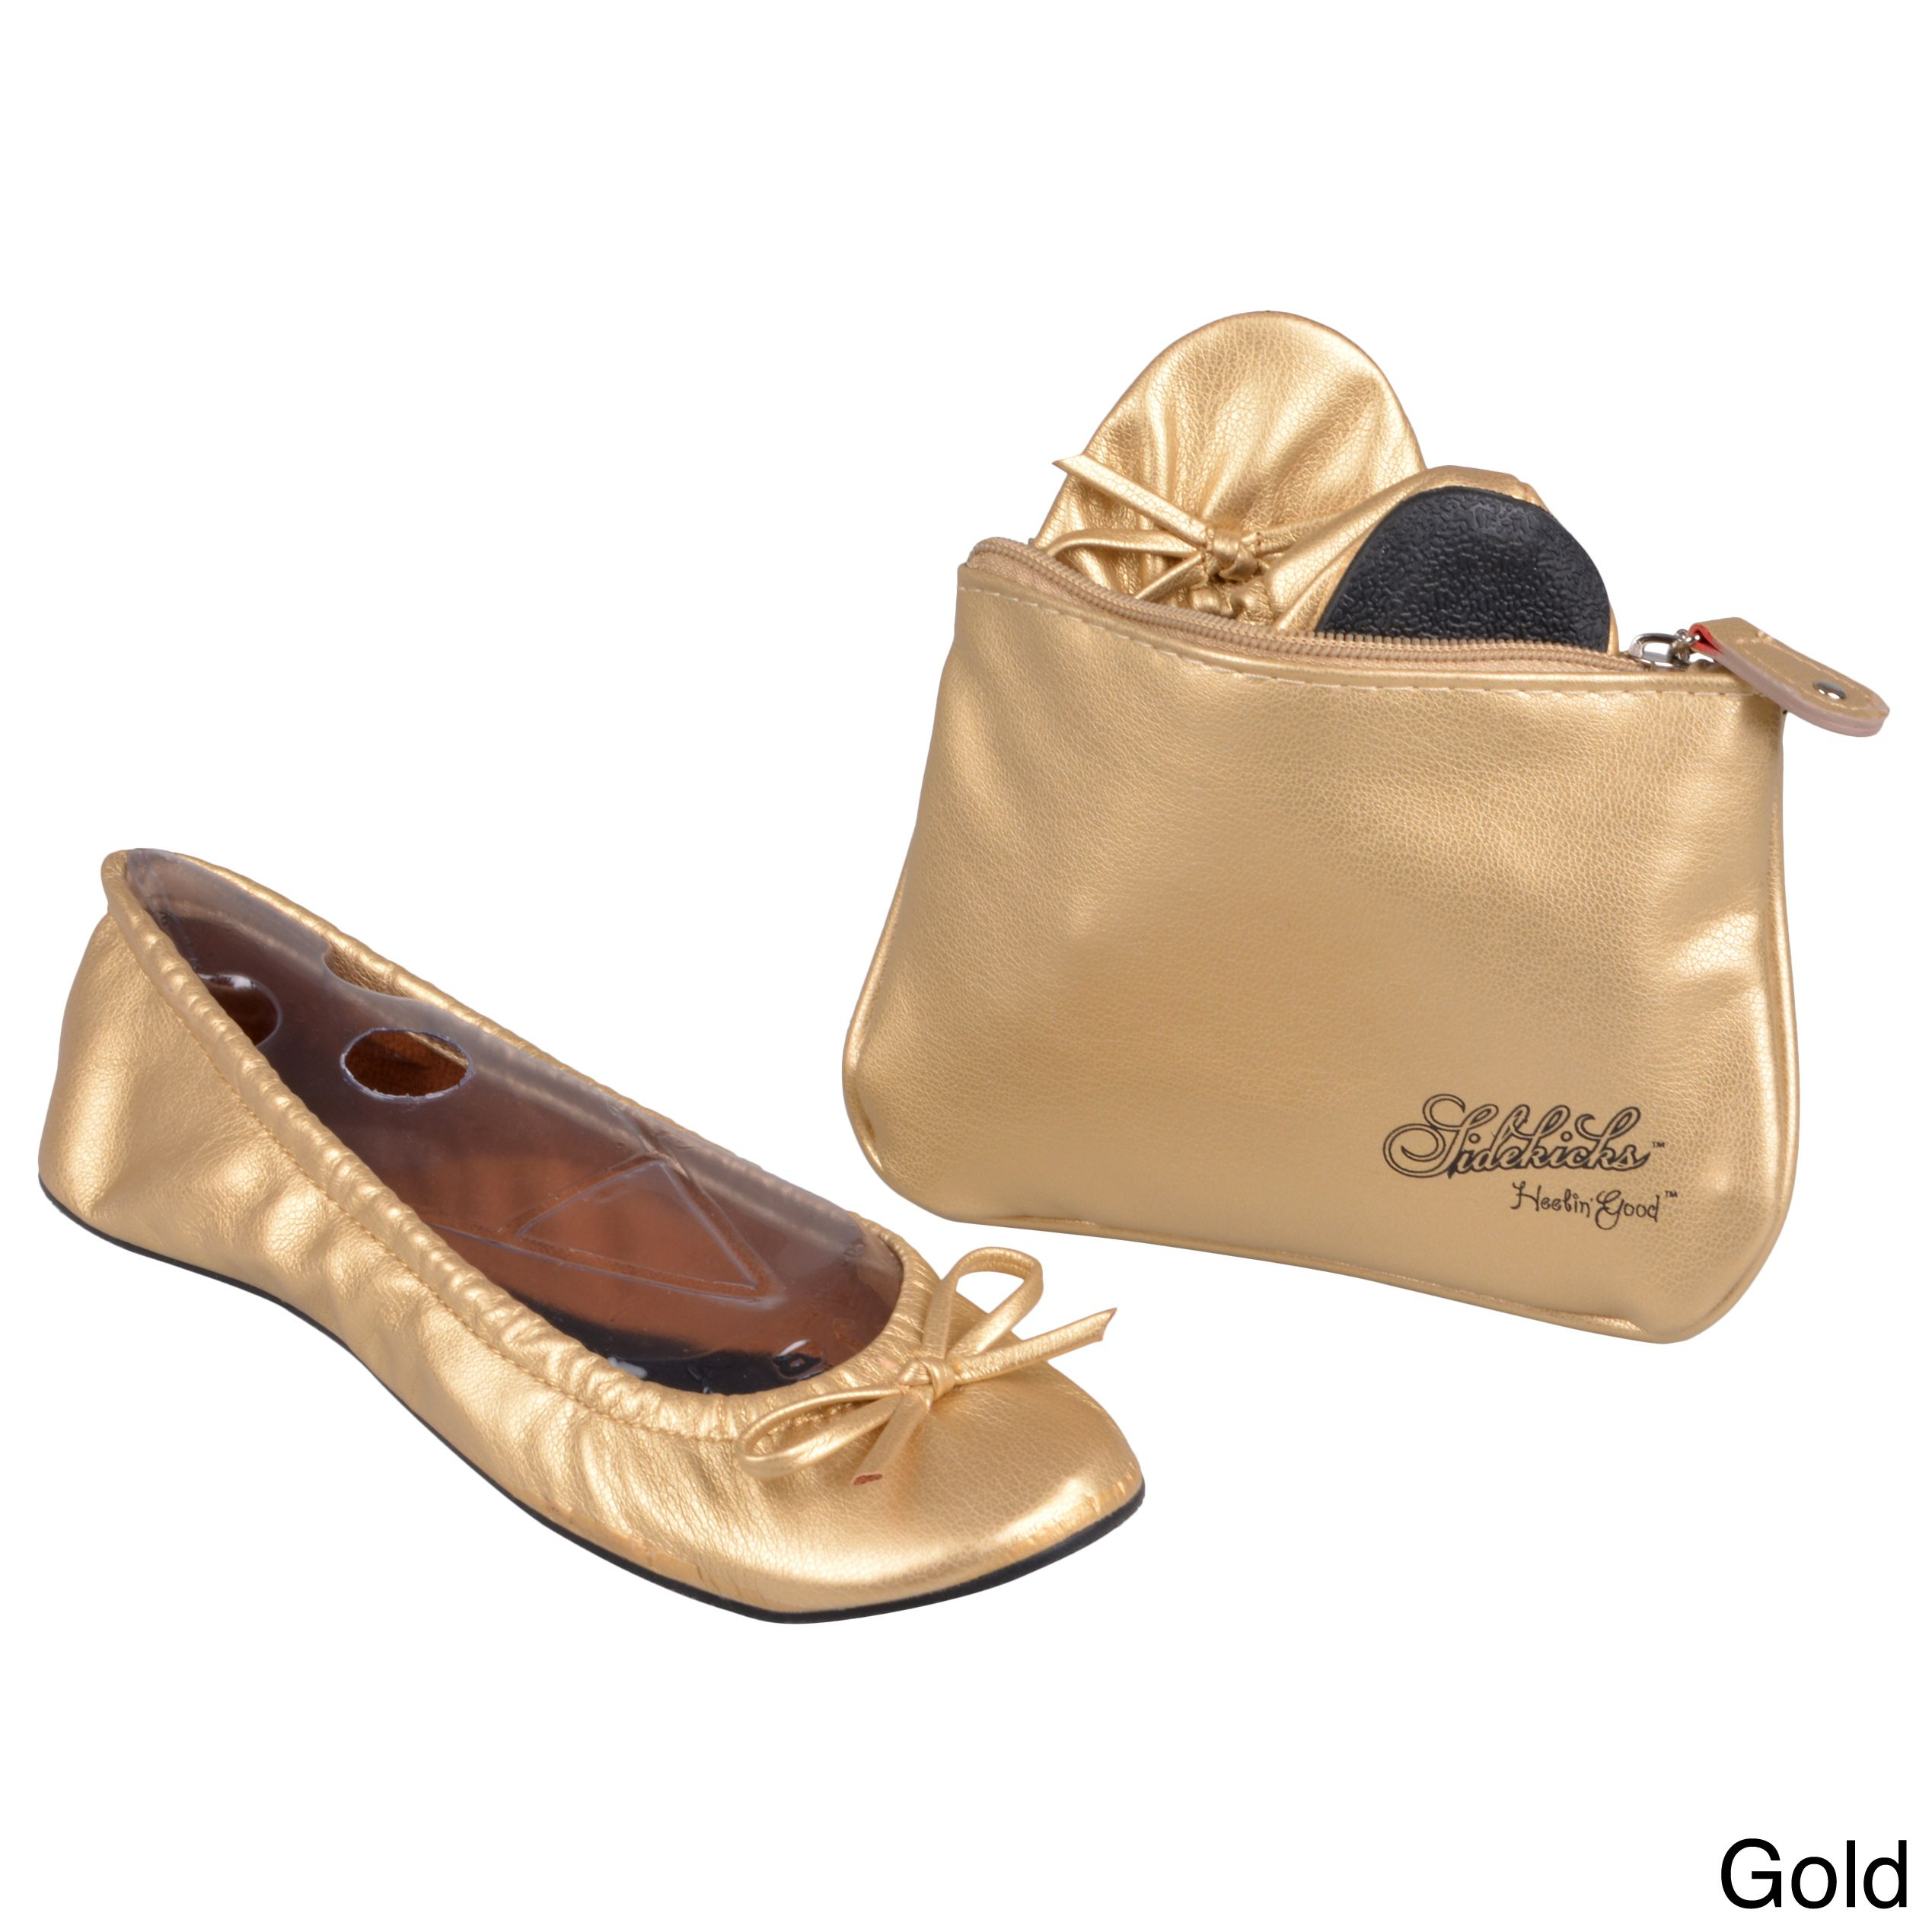 Foldable Flats In A Bag Fashionable Shiny Finish And Small Bow Accent Add Style To These Portable By Sidekicks